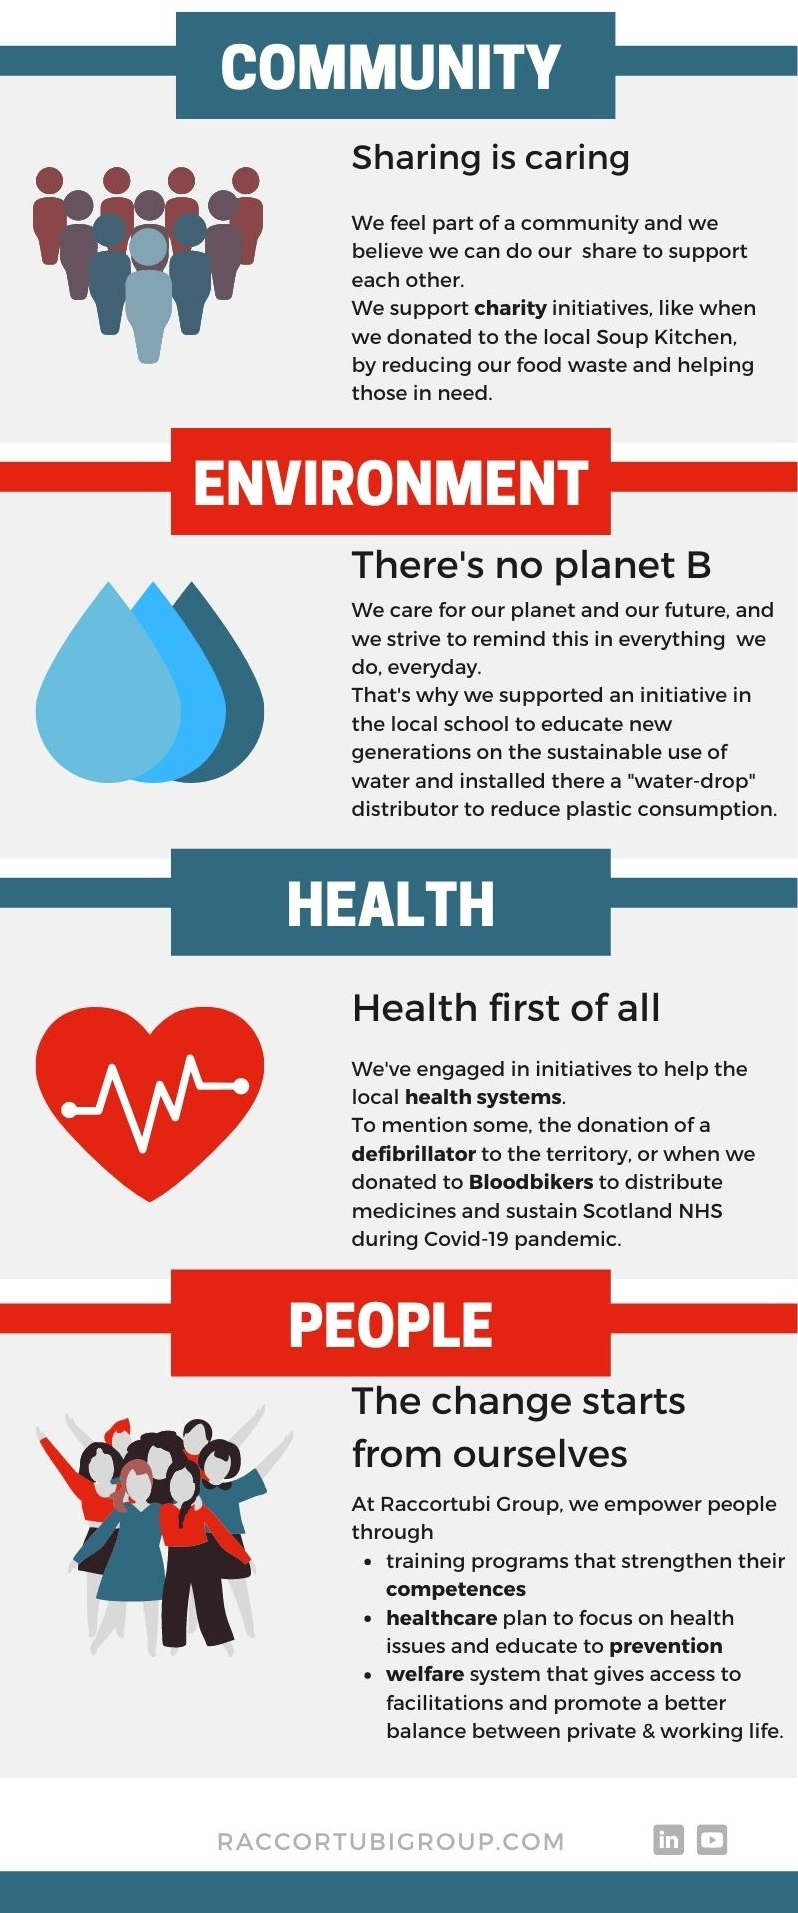 Infographic-on-sustainability-at-Raccortubi-Group